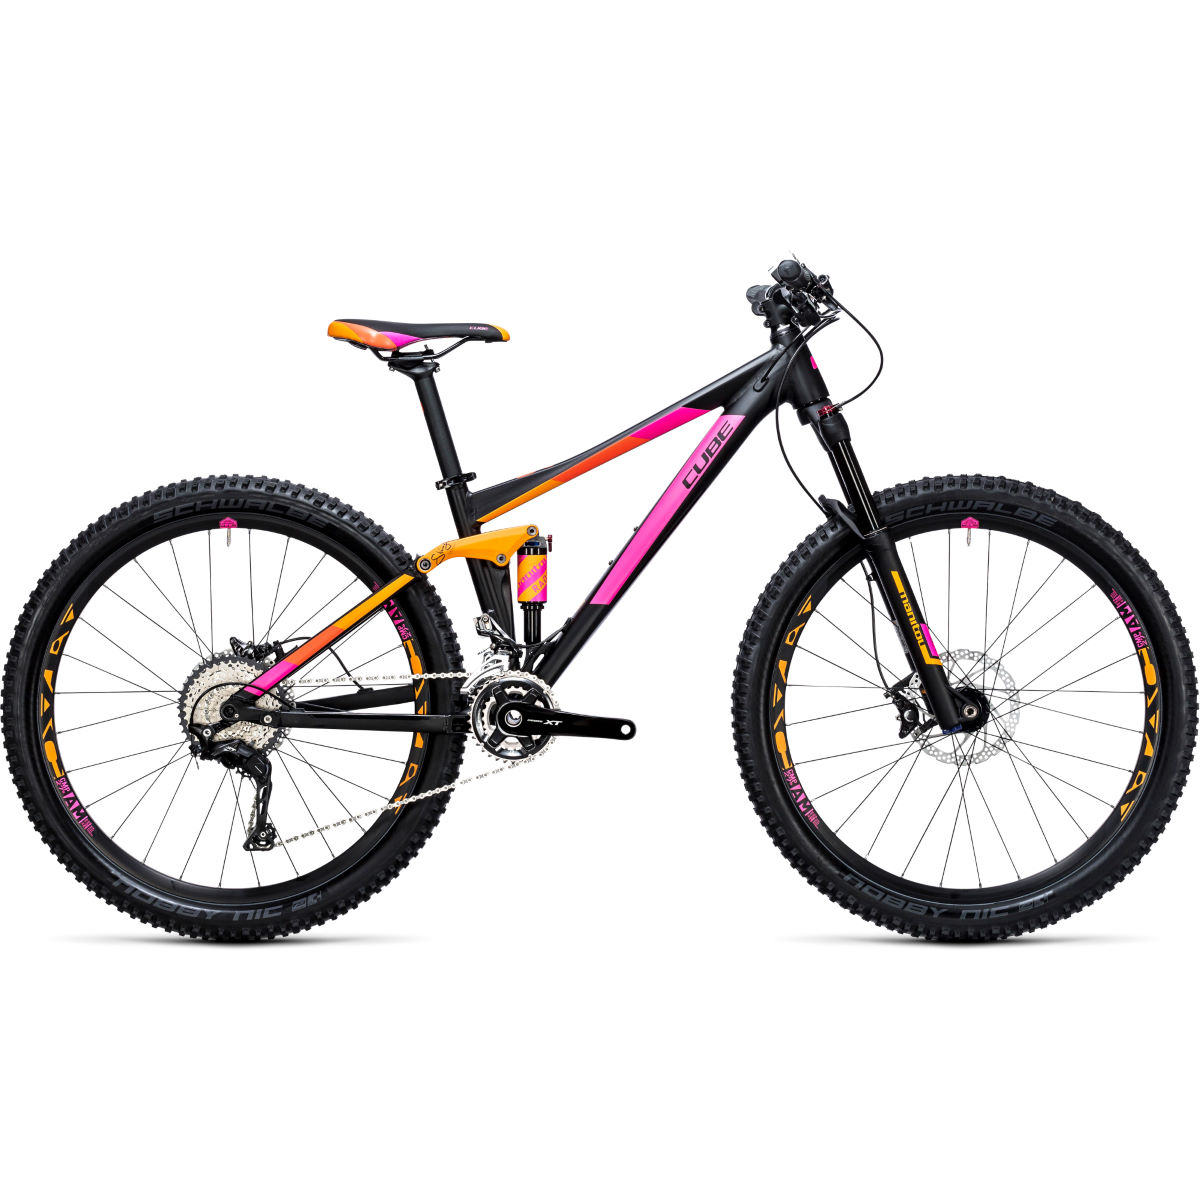 Cube Sting WLS 120 Pro Full Suspension Bike - Bicicletas MTB doble suspensión